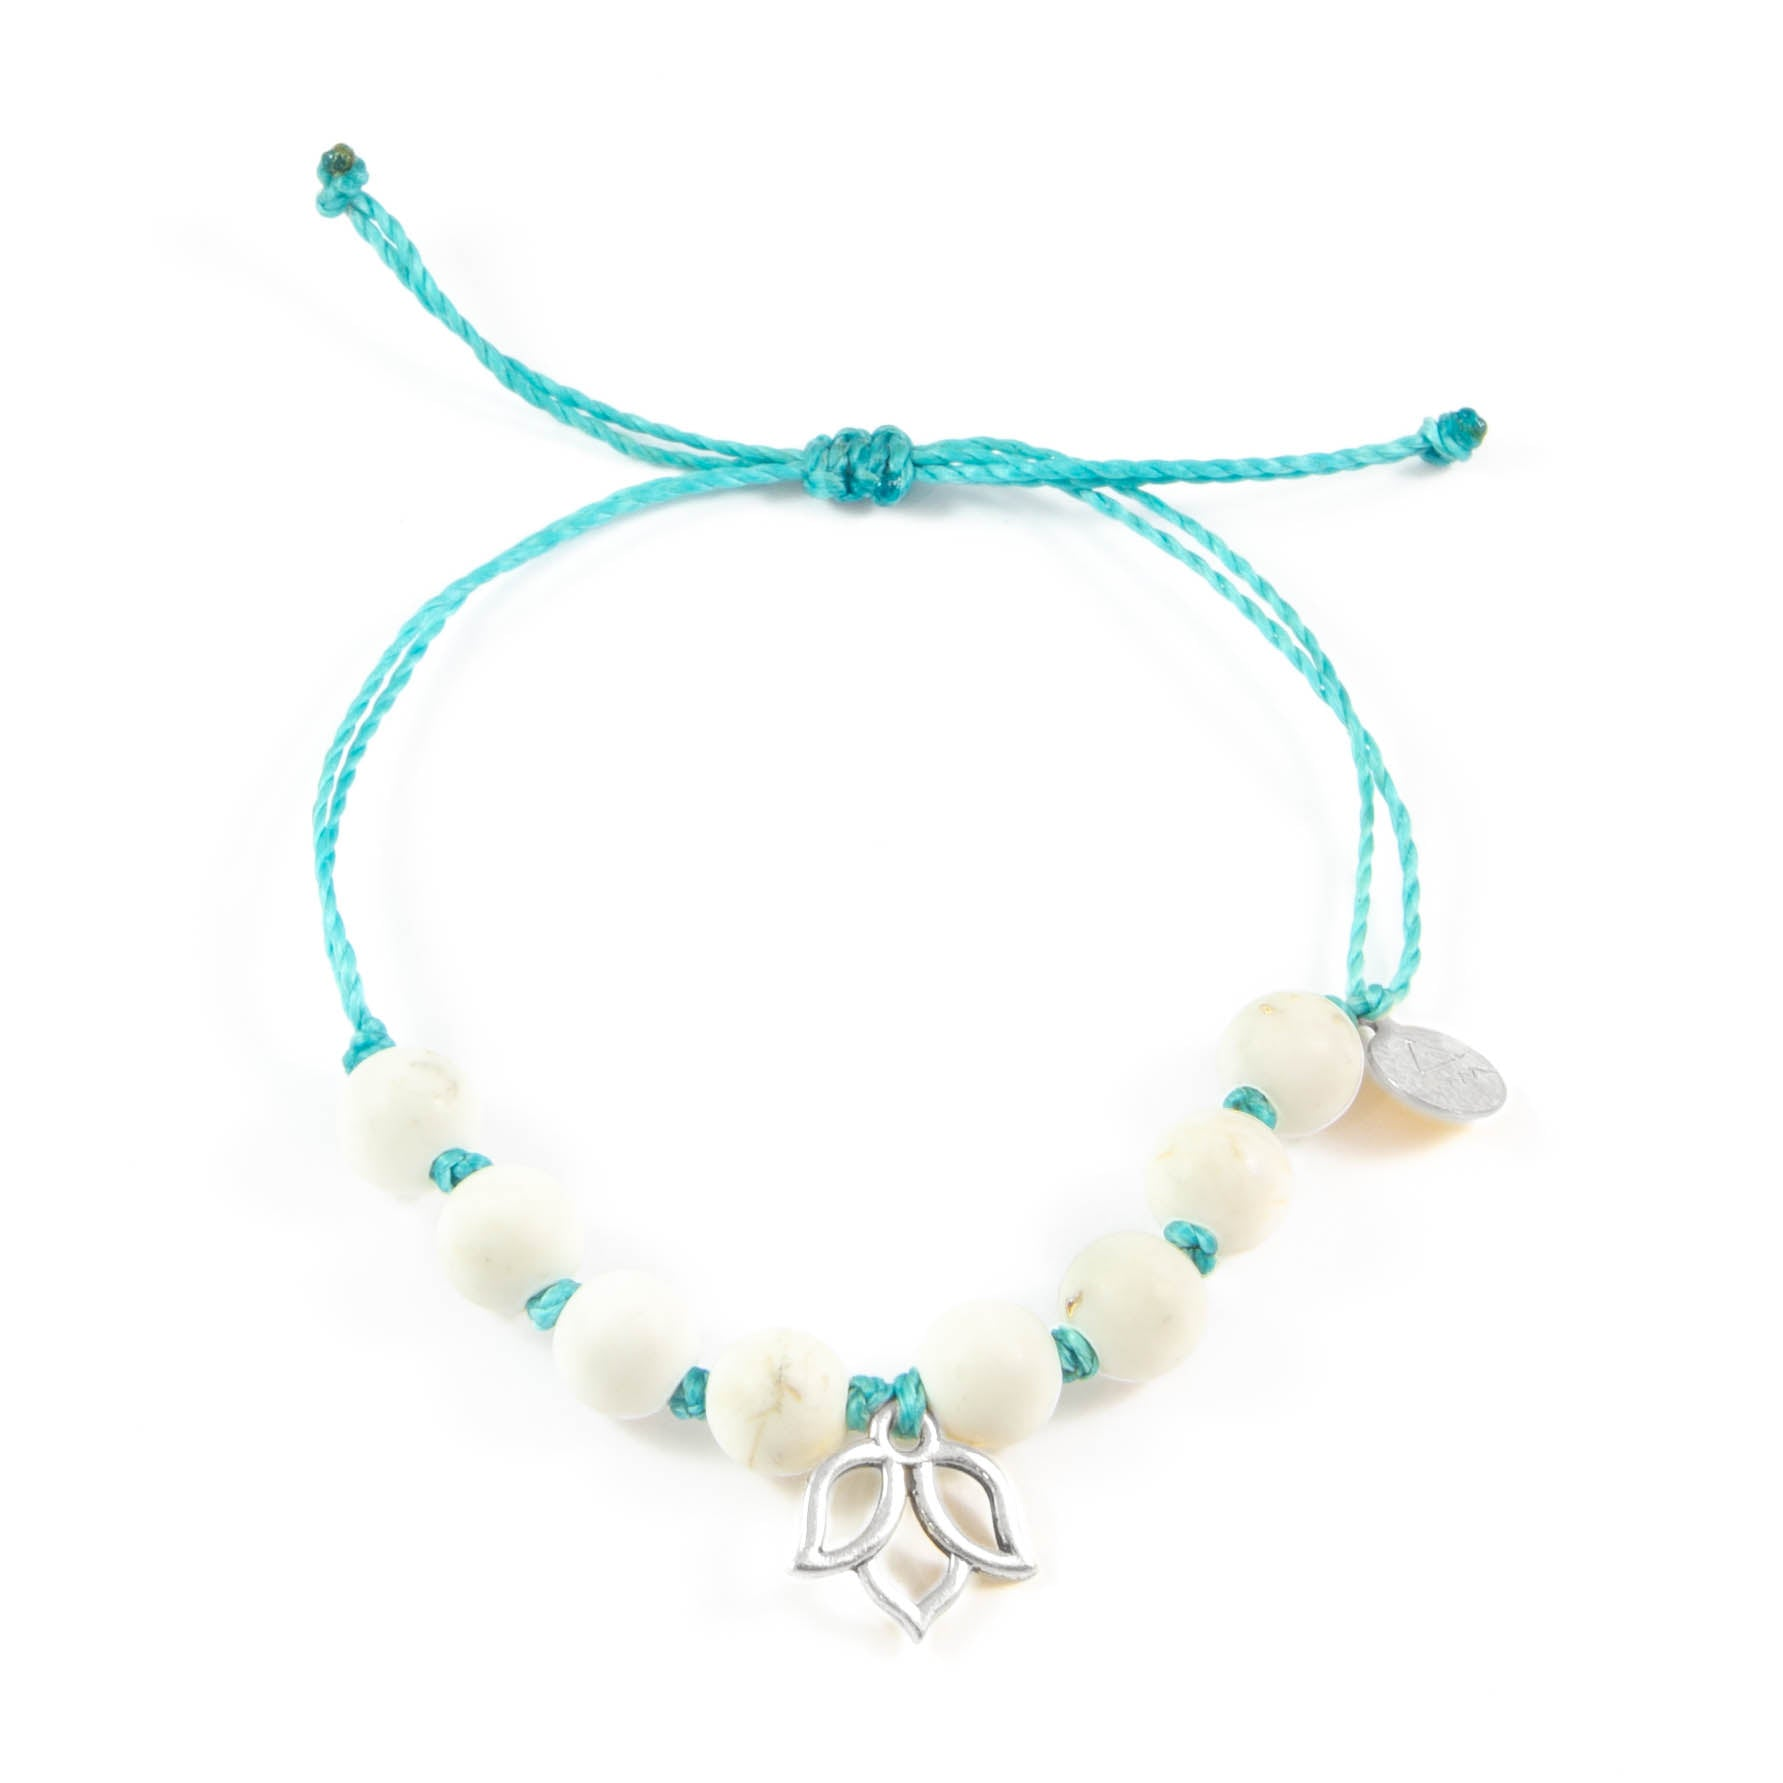 Teal White Turquoise Lotus Flower Bracelet In Silver Nica Life